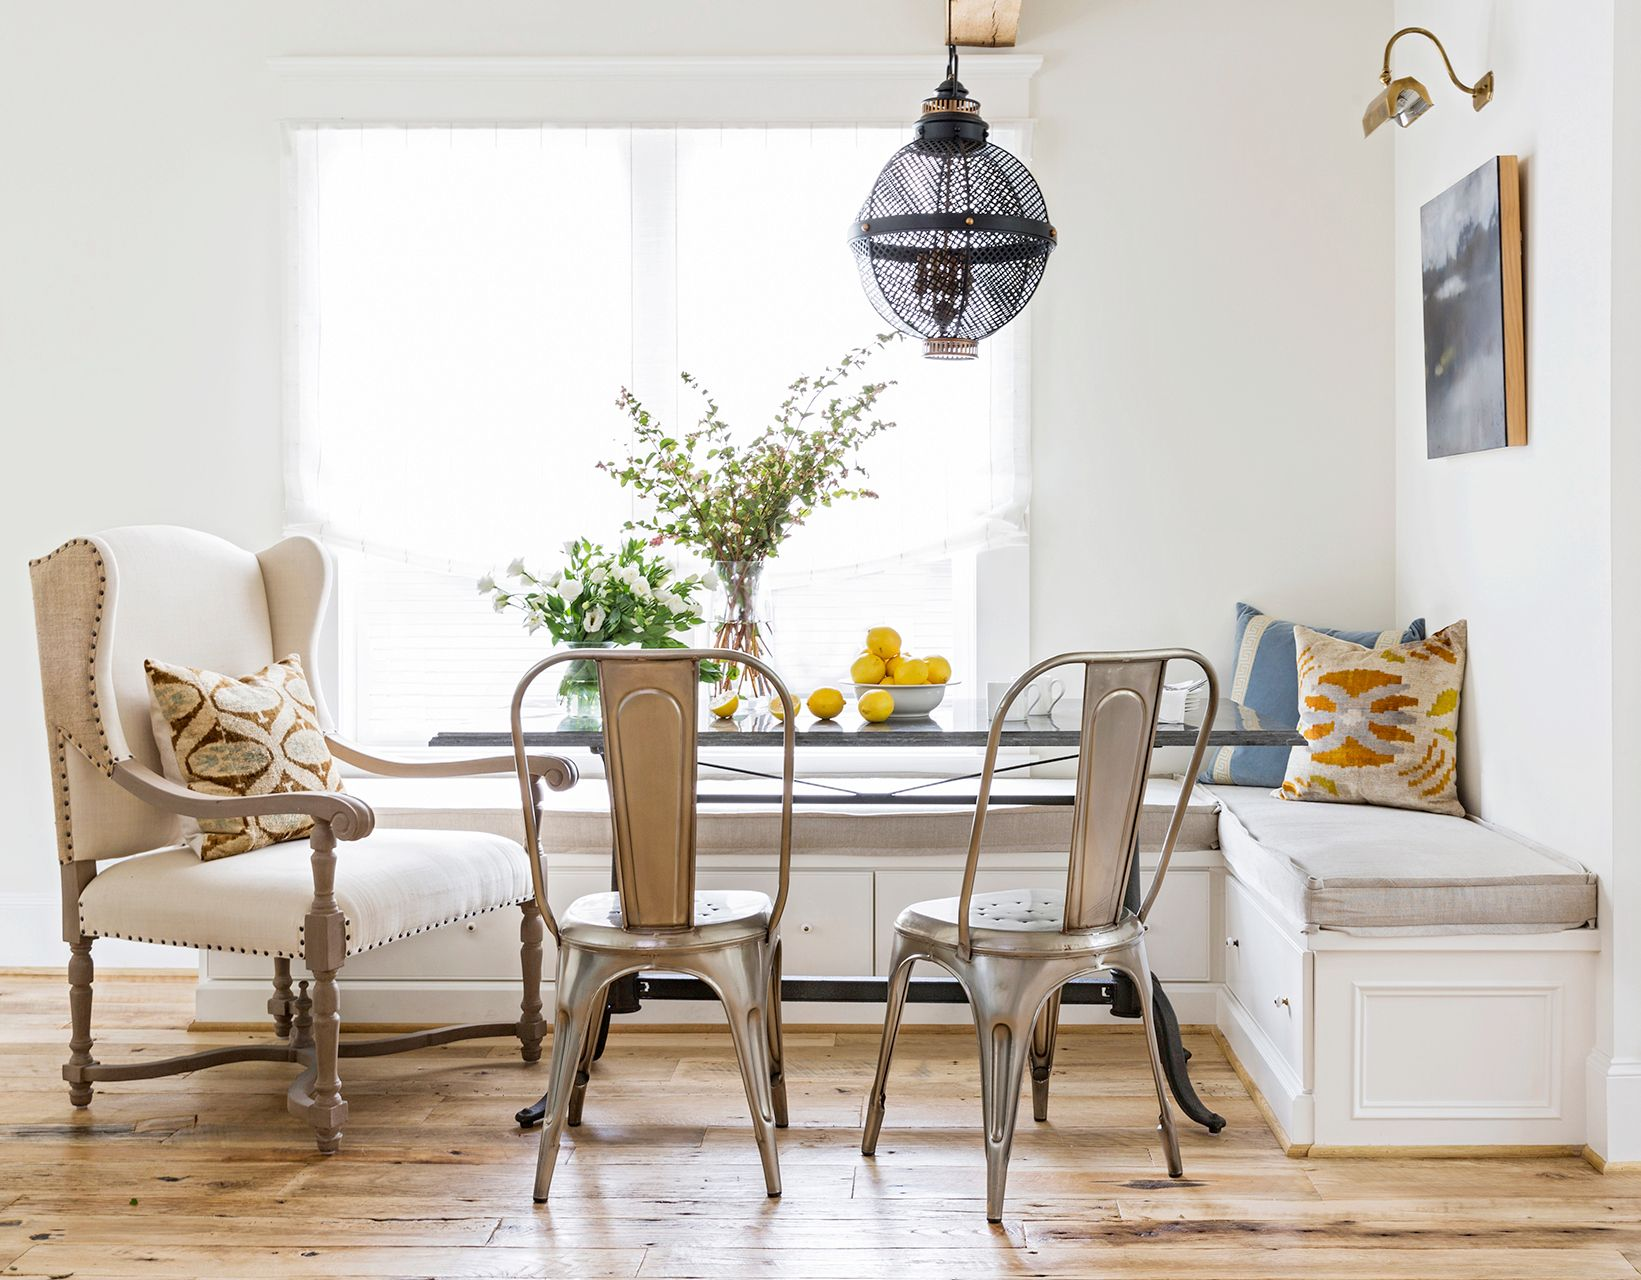 Petite Banquette Design See How This Overlooked Garage Attic Transformed Into A Dreamy